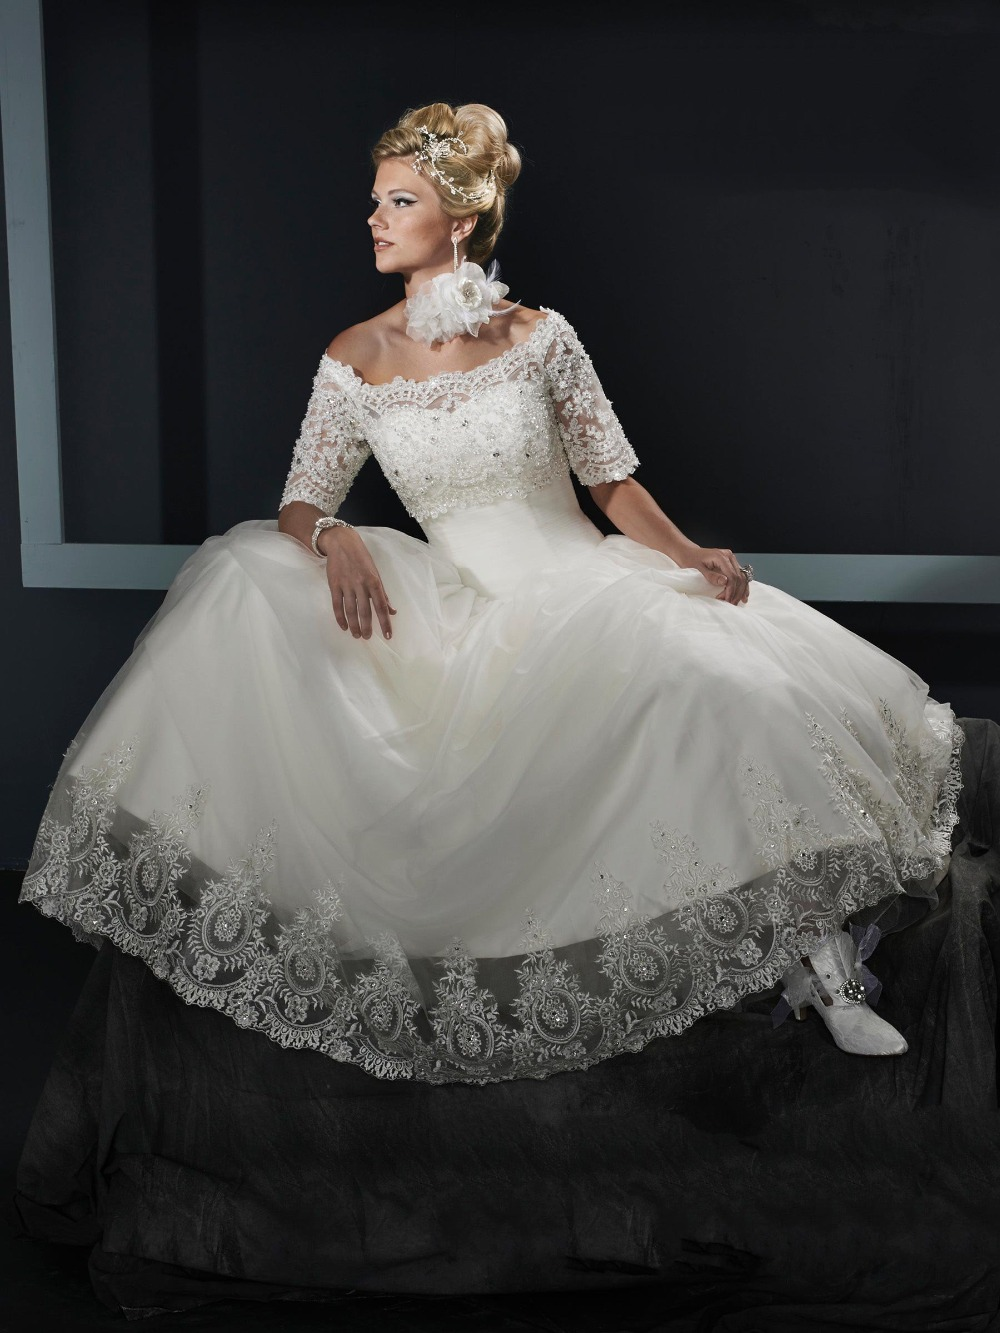 Ball Gown Wedding Dresses Off Shoulder Sleeves : Off the shoulder lace ball gown wedding dress with sleeves